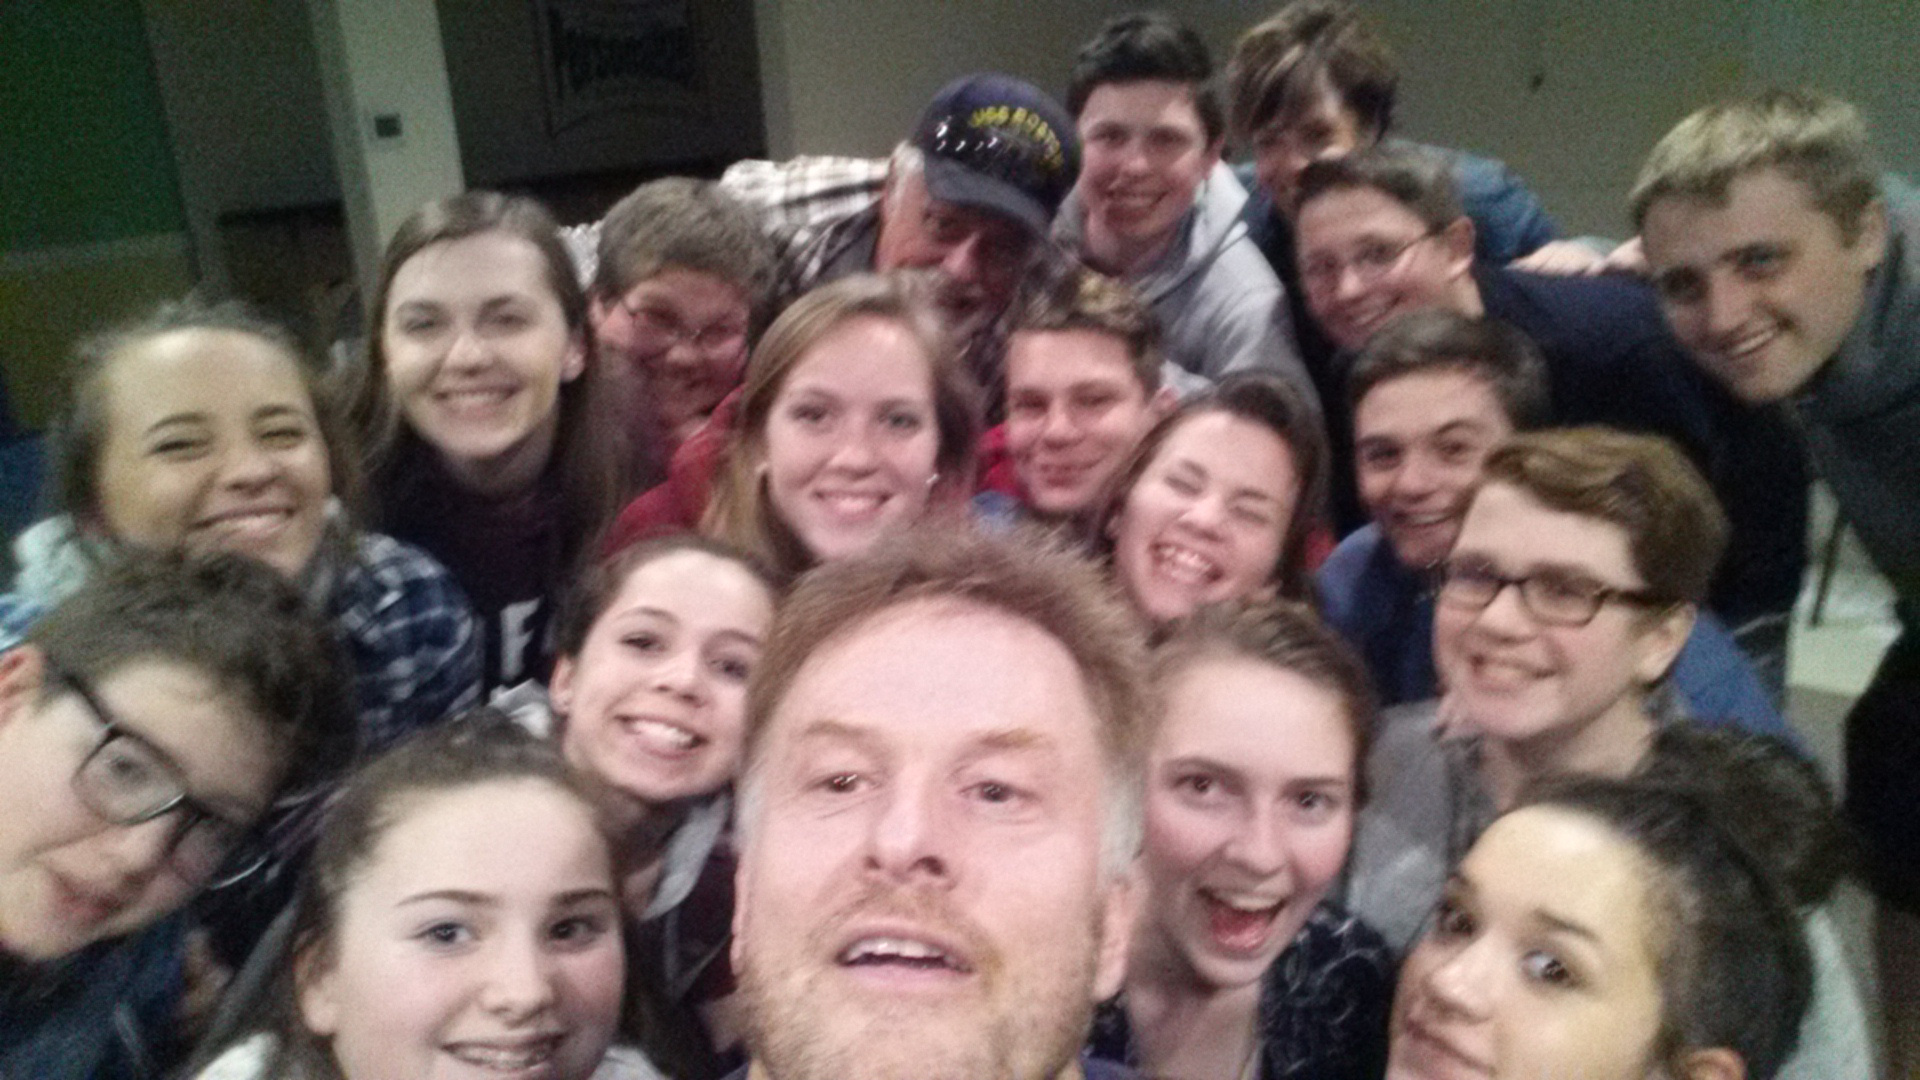 I got to hang out with the Youth Group at our Sandown this week. What an awesome group of youth people. Love them!